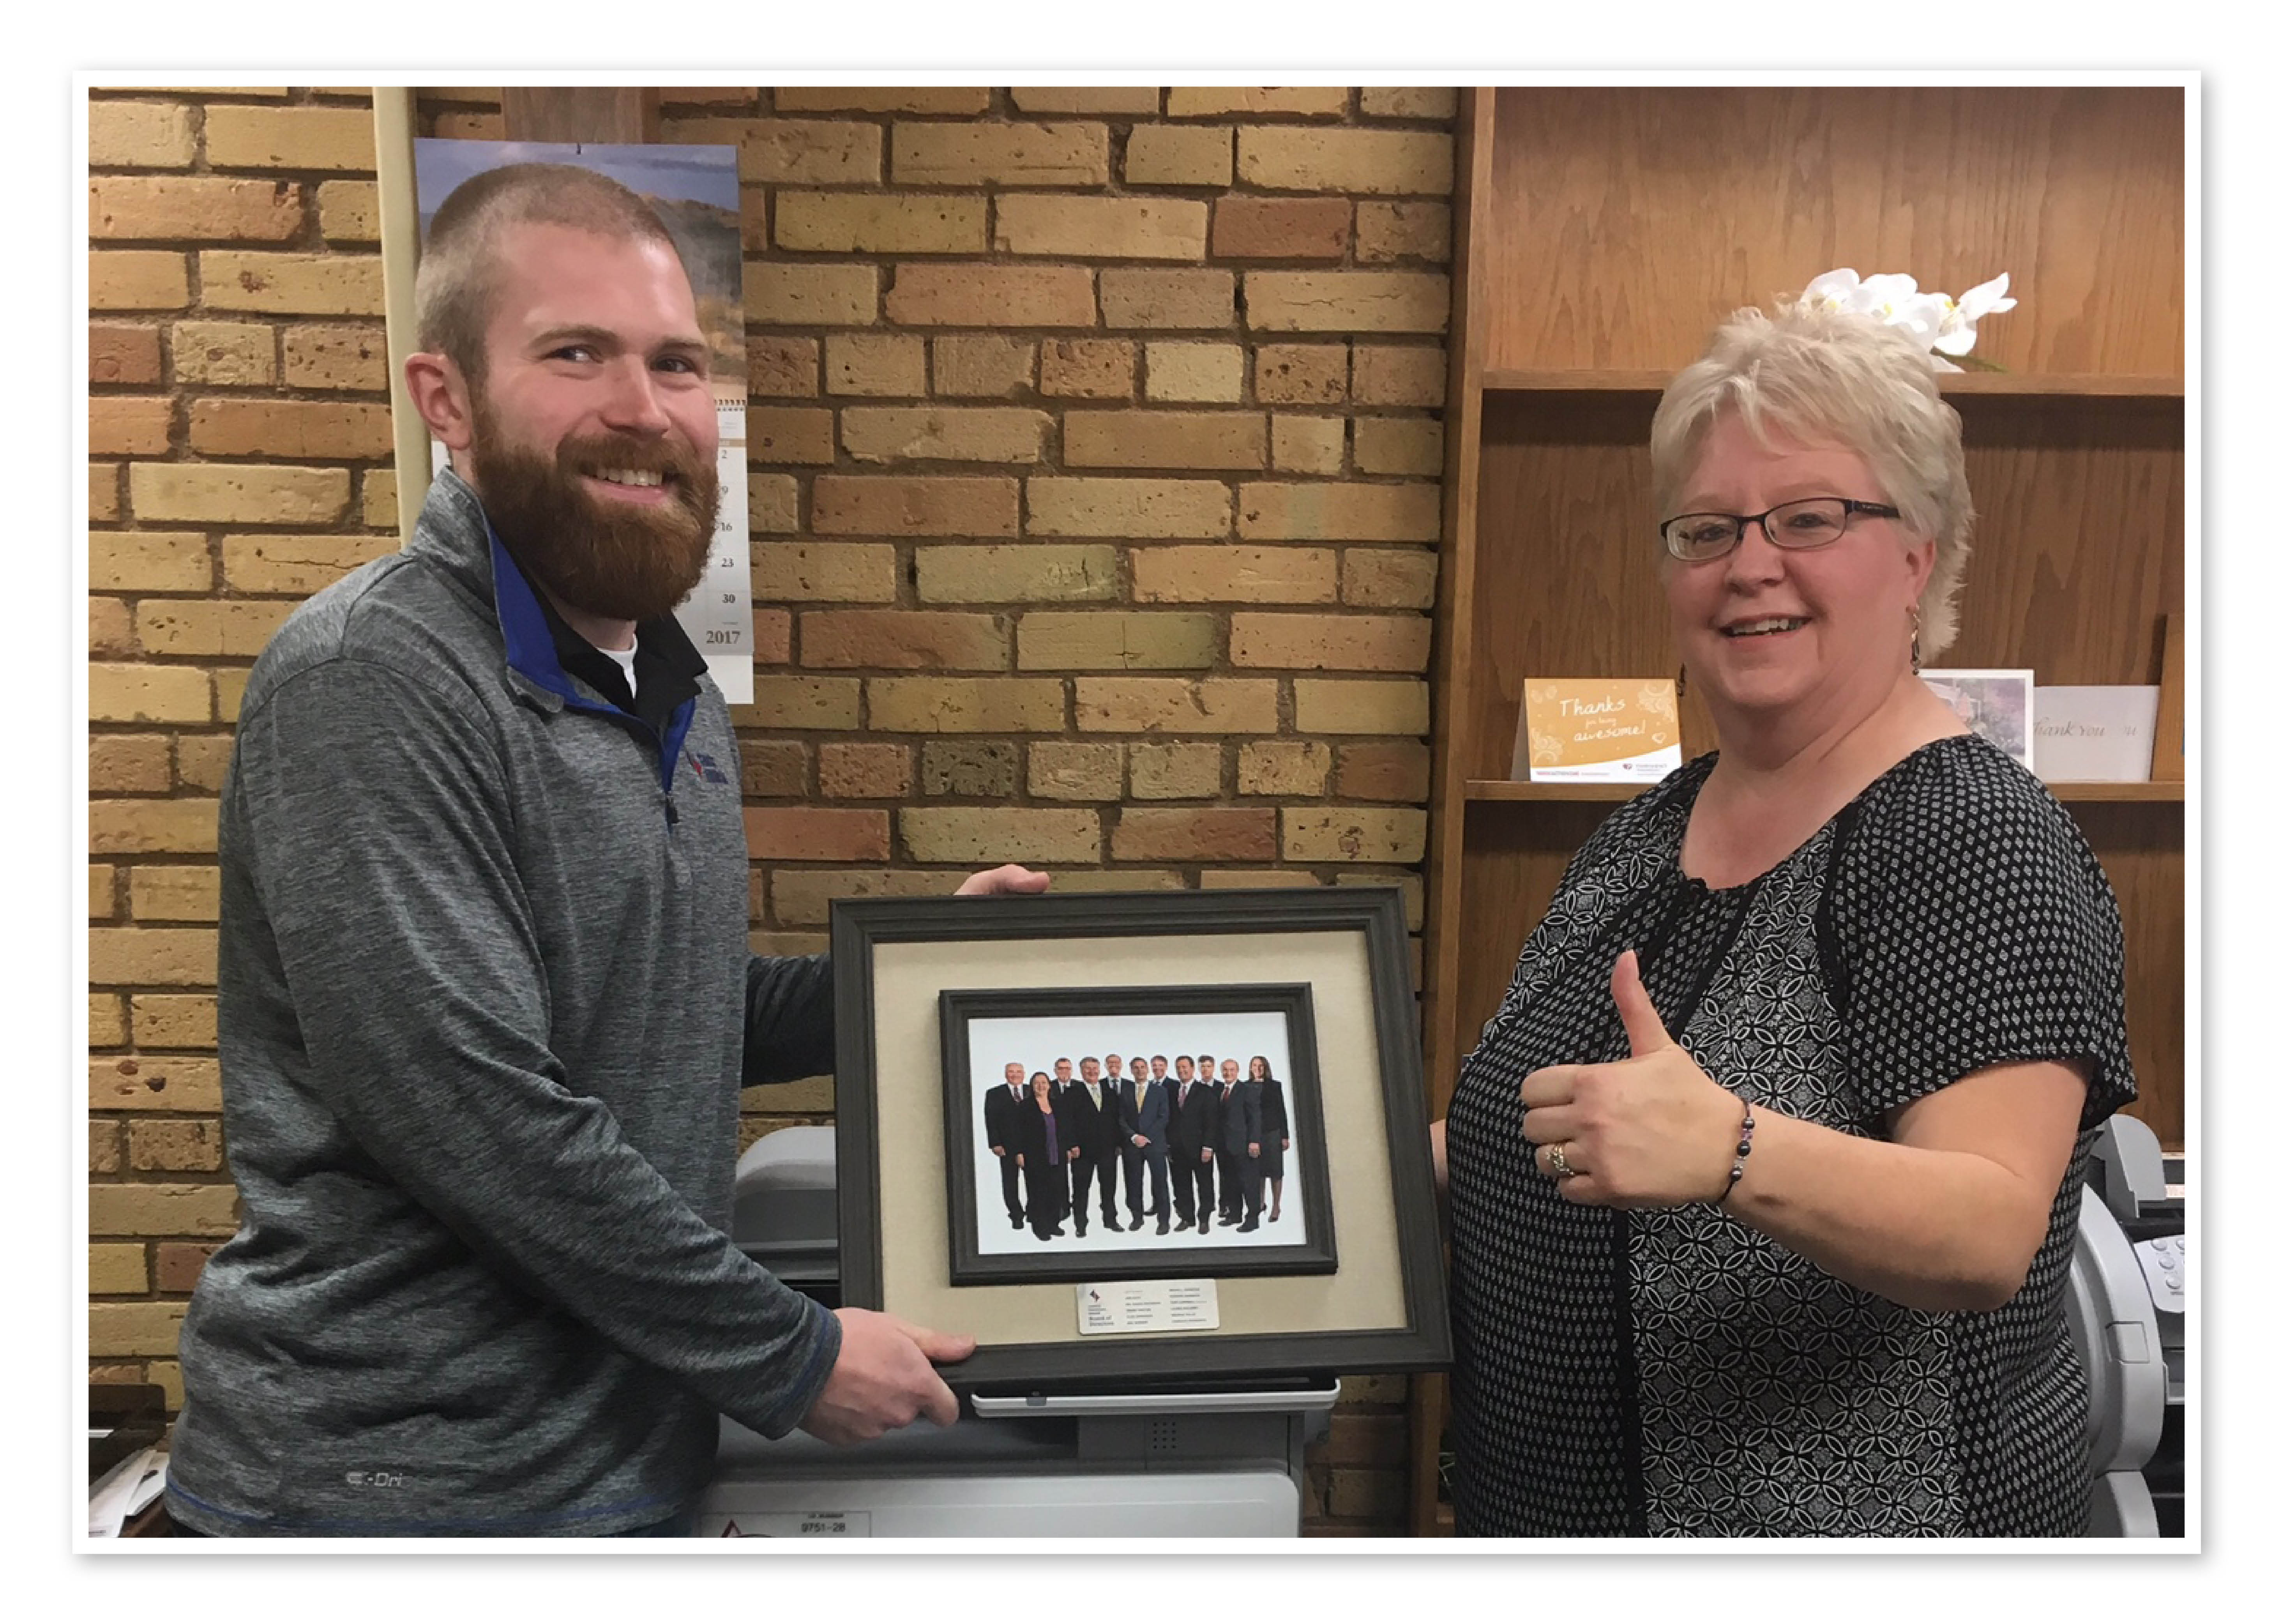 Todd and Karen hold the picture of the board of directors, ready to be hung on the wall. Karen gives a thumbs up.